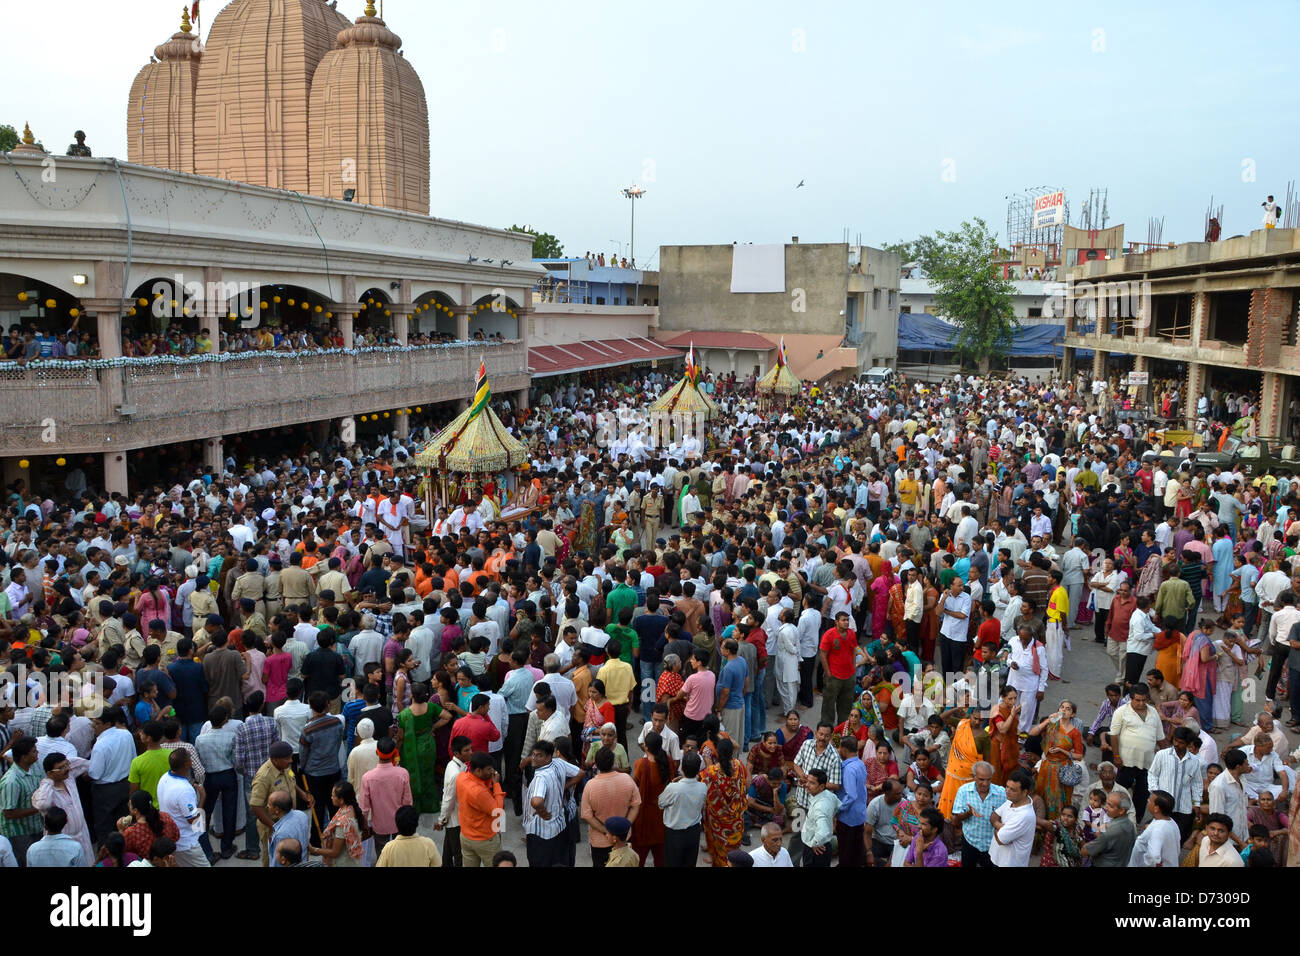 mass of ahmedabad people at early morning at temple - Stock Image